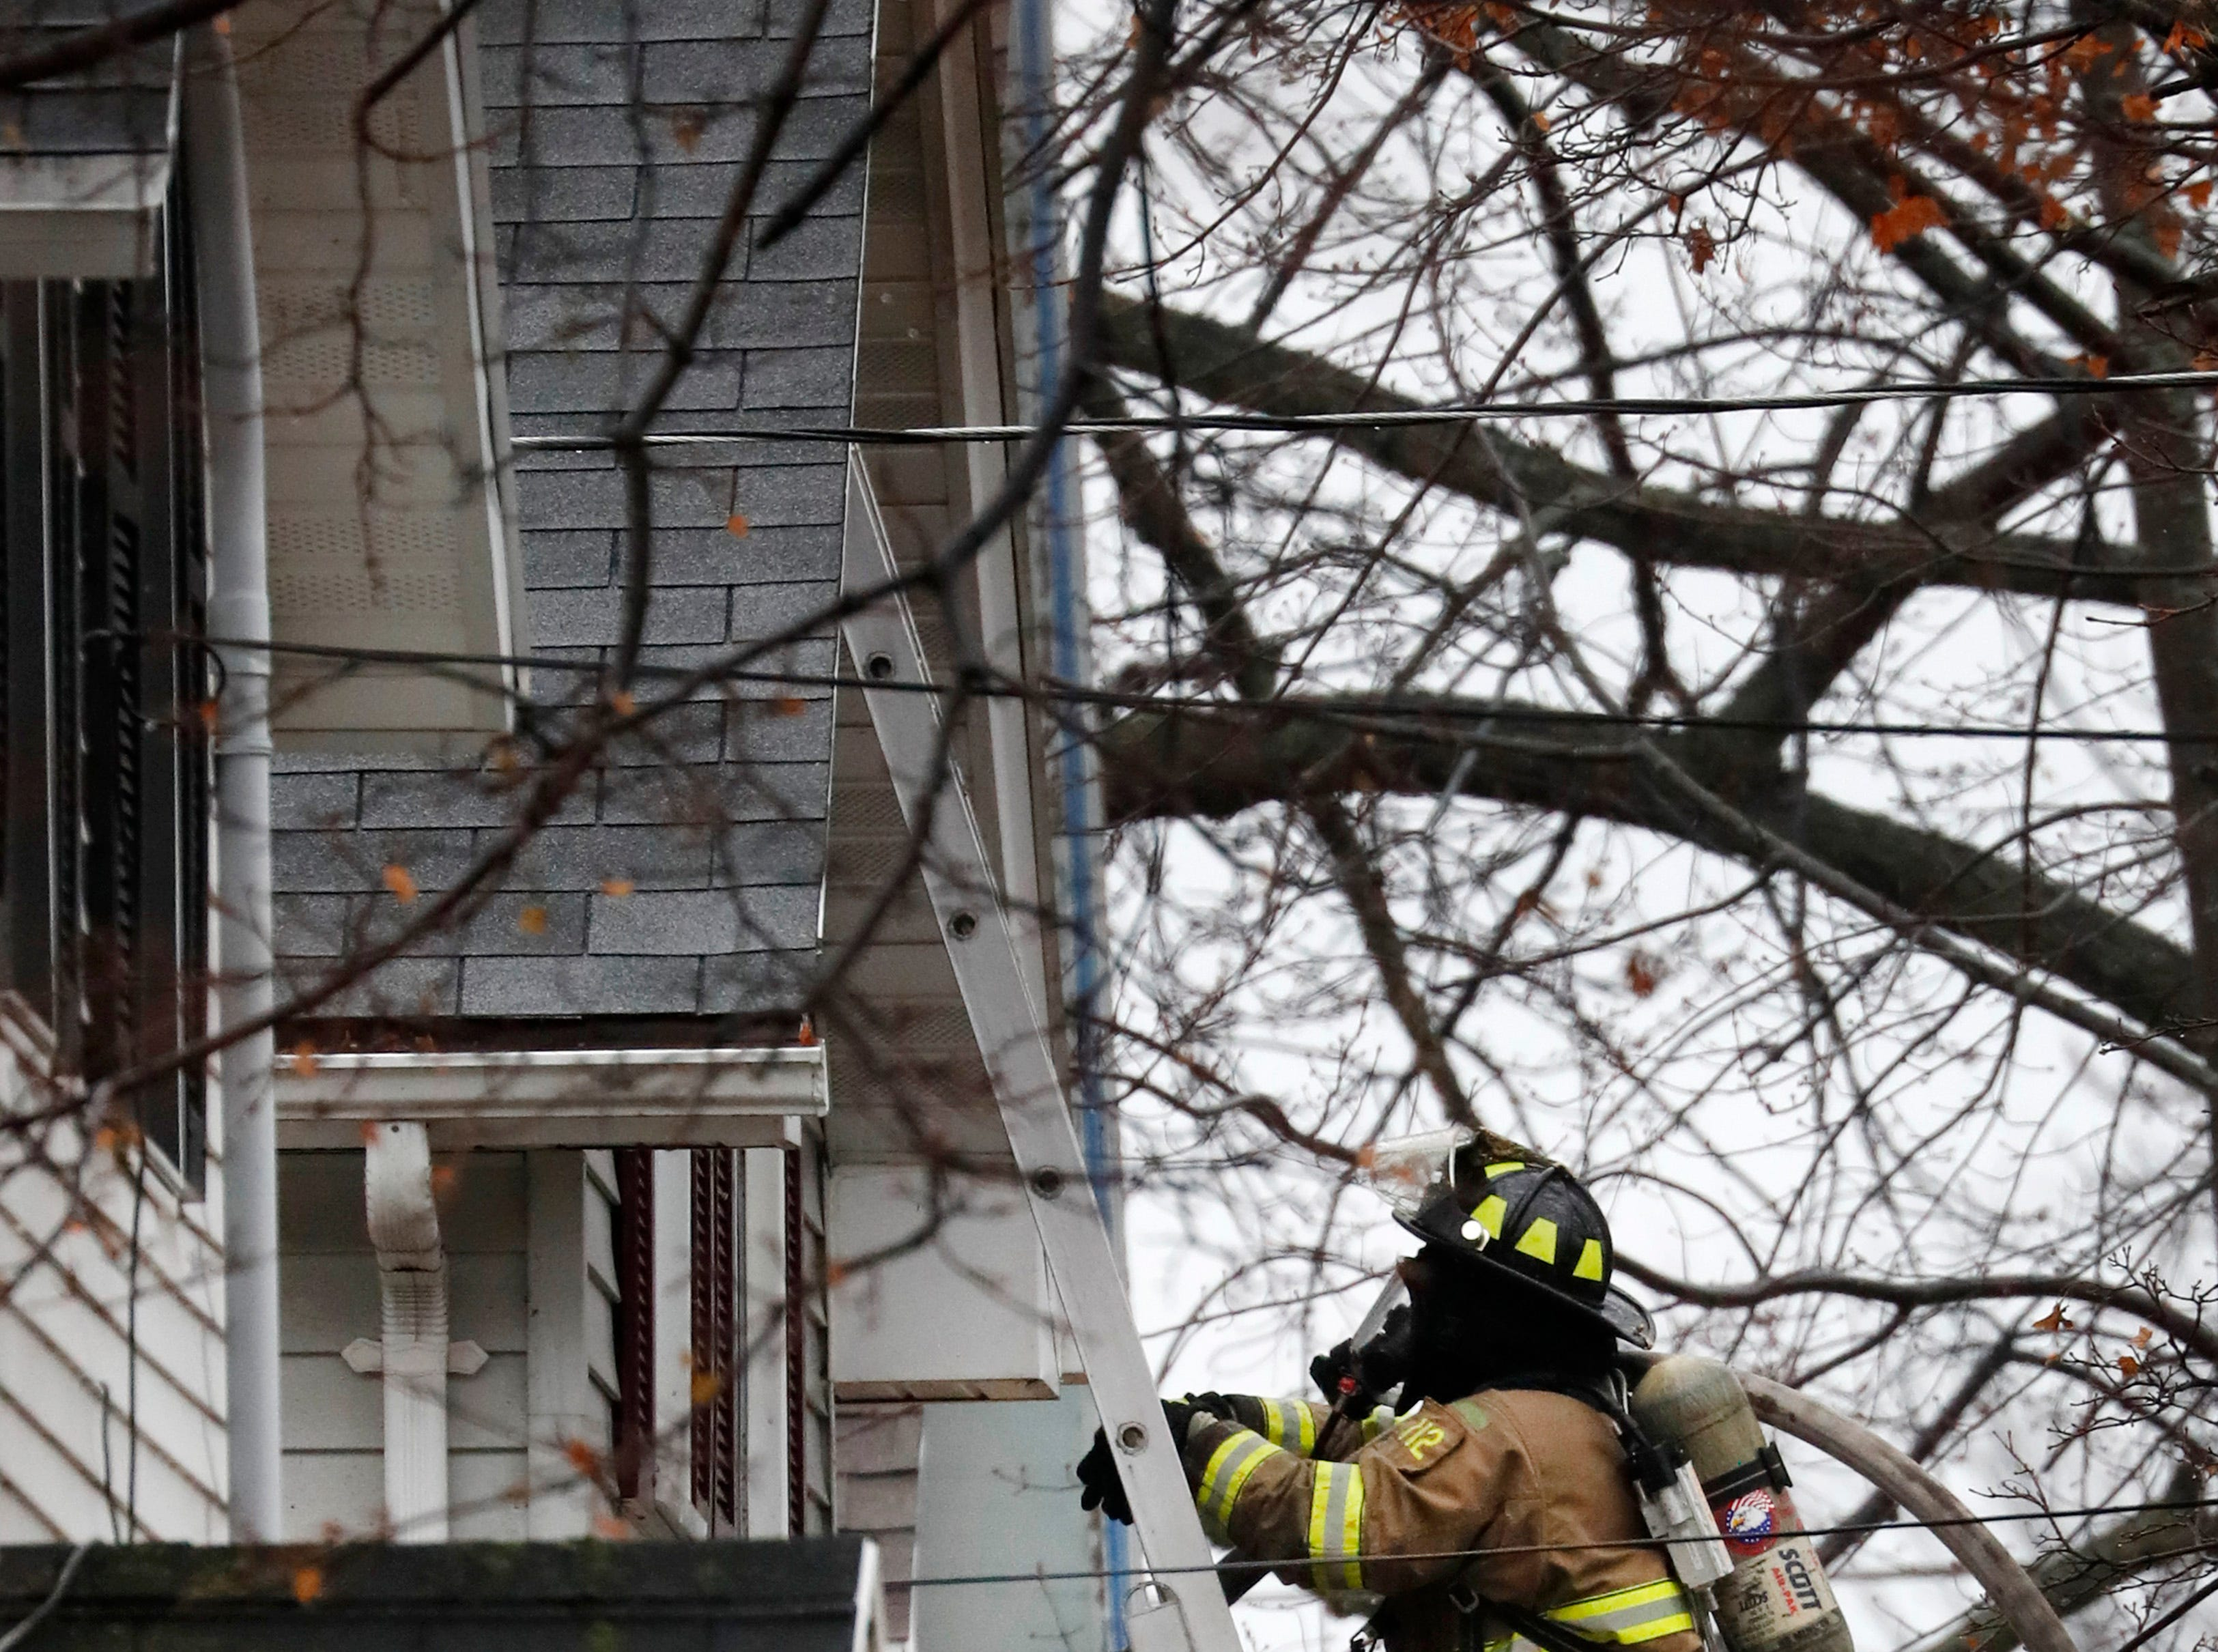 A Kaukauna firefighter climbs to the peak of a building while working to put out a structure fire on West 10th Street Thursday, Dec. 27, 2018, Kaukauna, Wis.